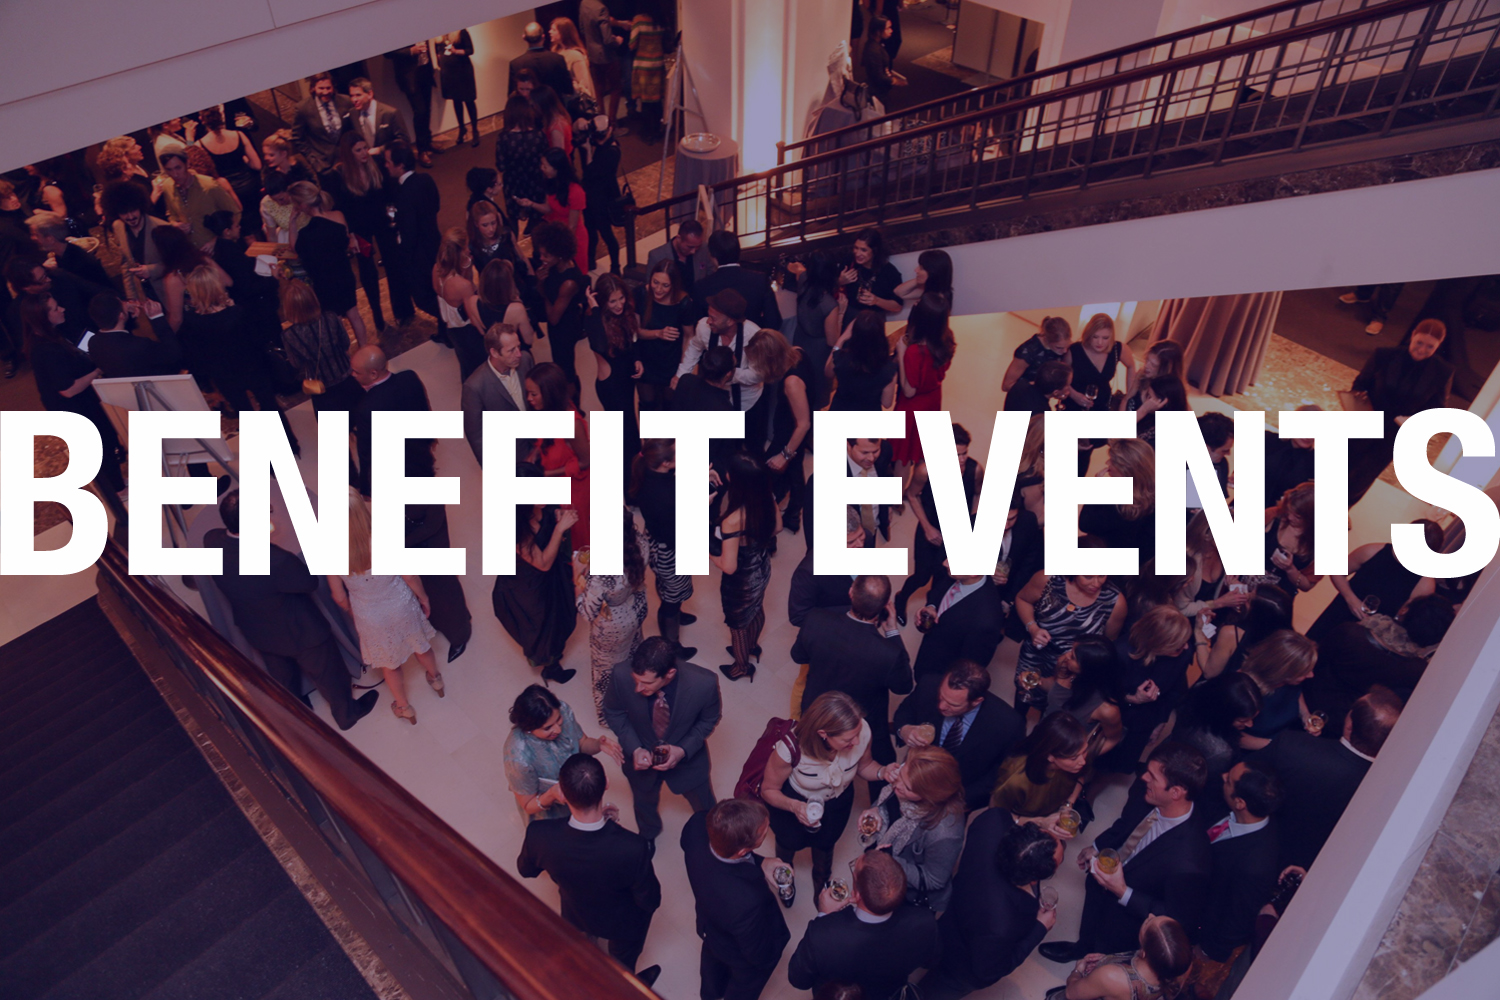 A successful fundraiser is about more than just one night. Discover the strategies that will enable your organization to capitalize on all of the hard work that goes into planning a successful benefit event.